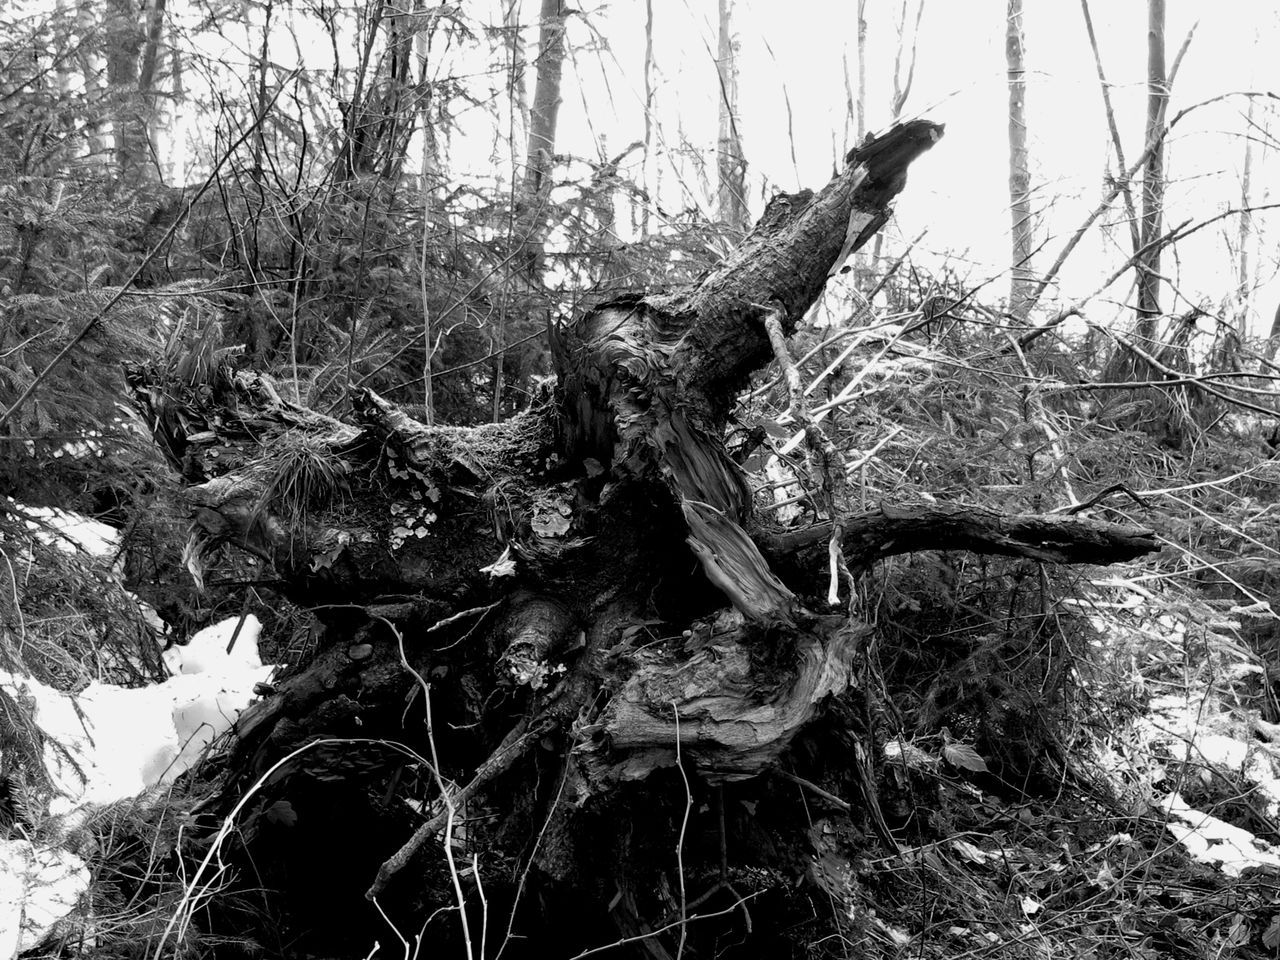 Dead tree in forest